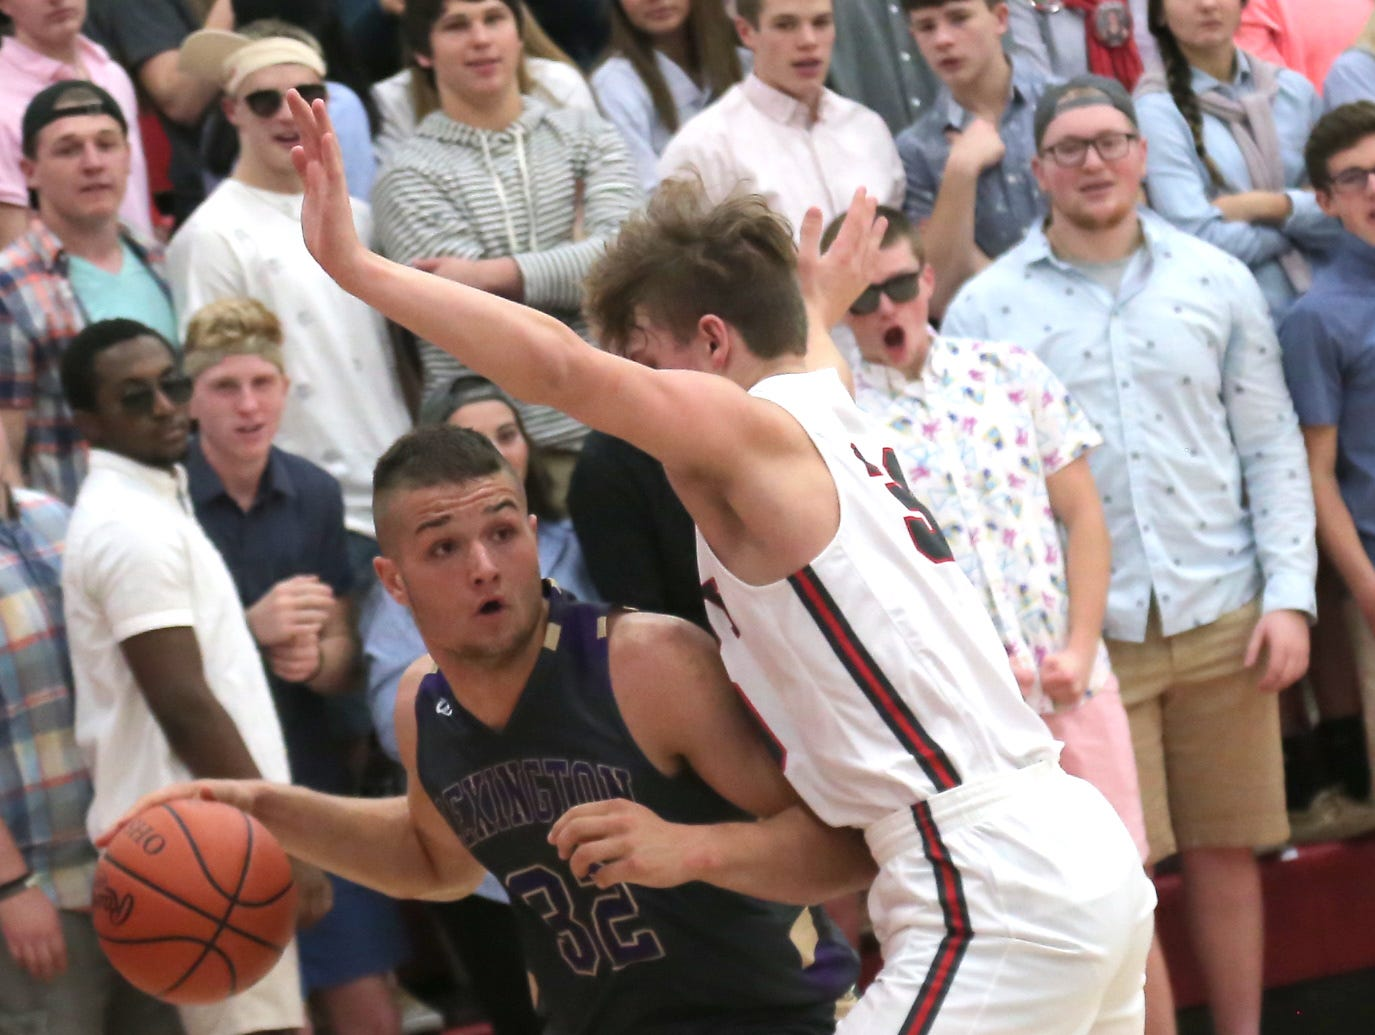 Lexington's Cade Stover dribbles the ball while playing at Shelby on Saturday.